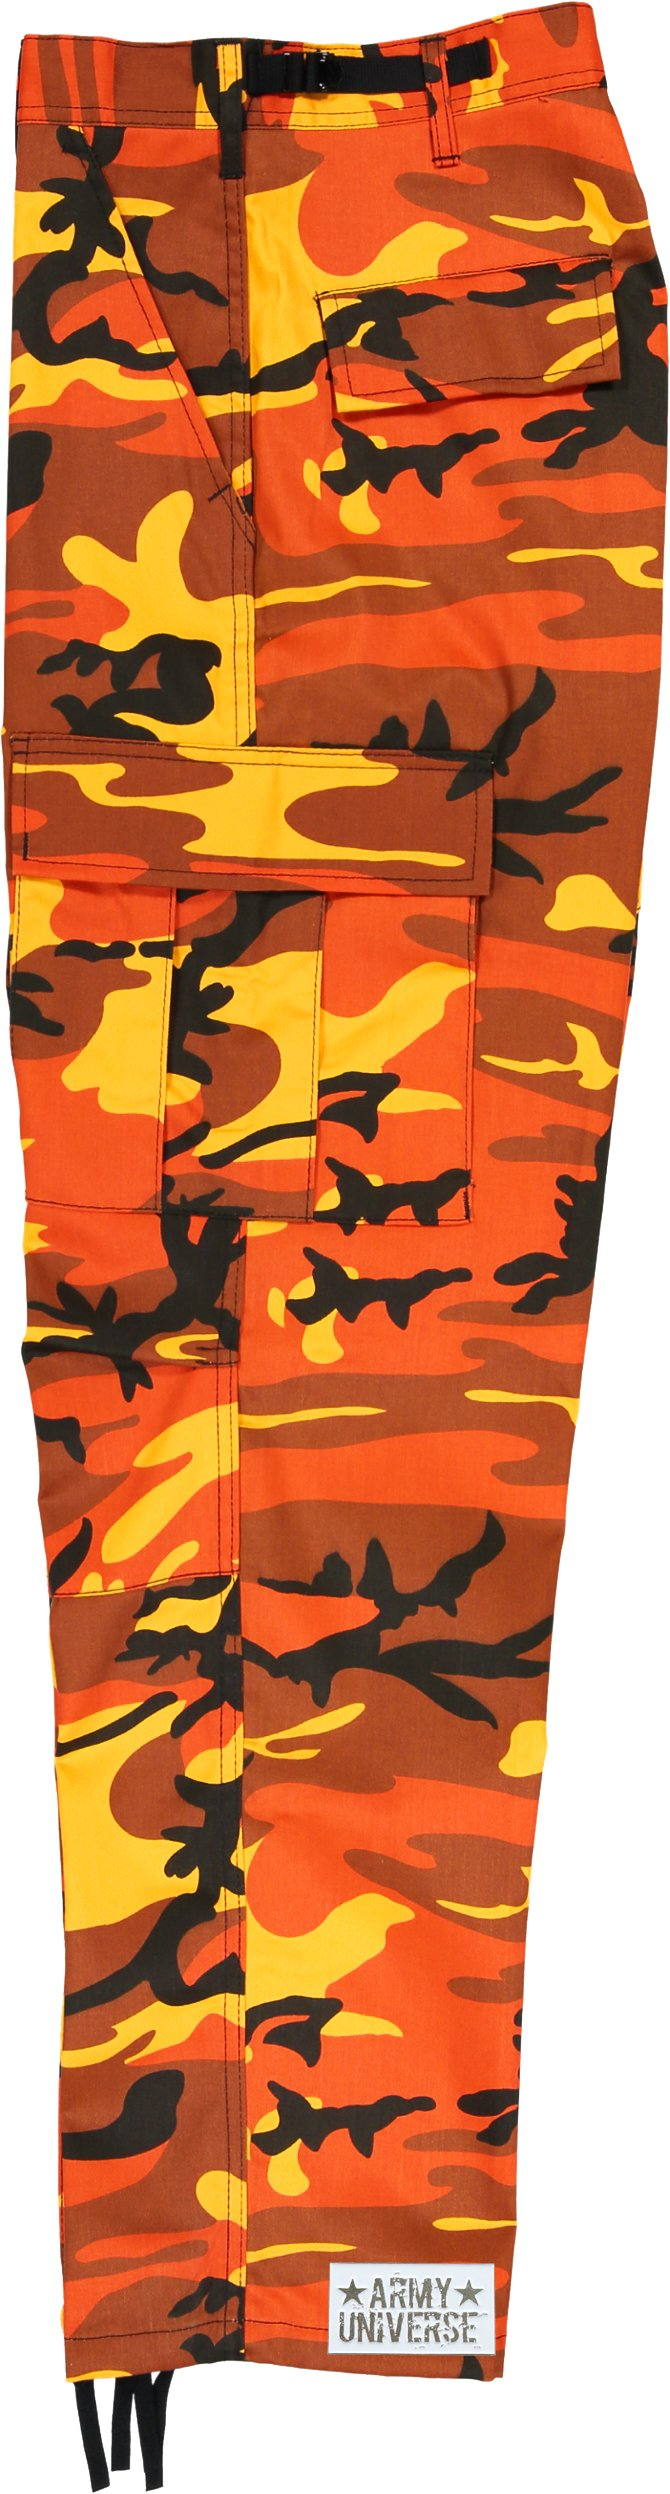 Army Universe Orange Camo Cargo BDU Pants Hunters Camouflage Tactical  Military Fatigues with Pin - OCBDU+PIN   Pants   Clothing 7dd90b16be0